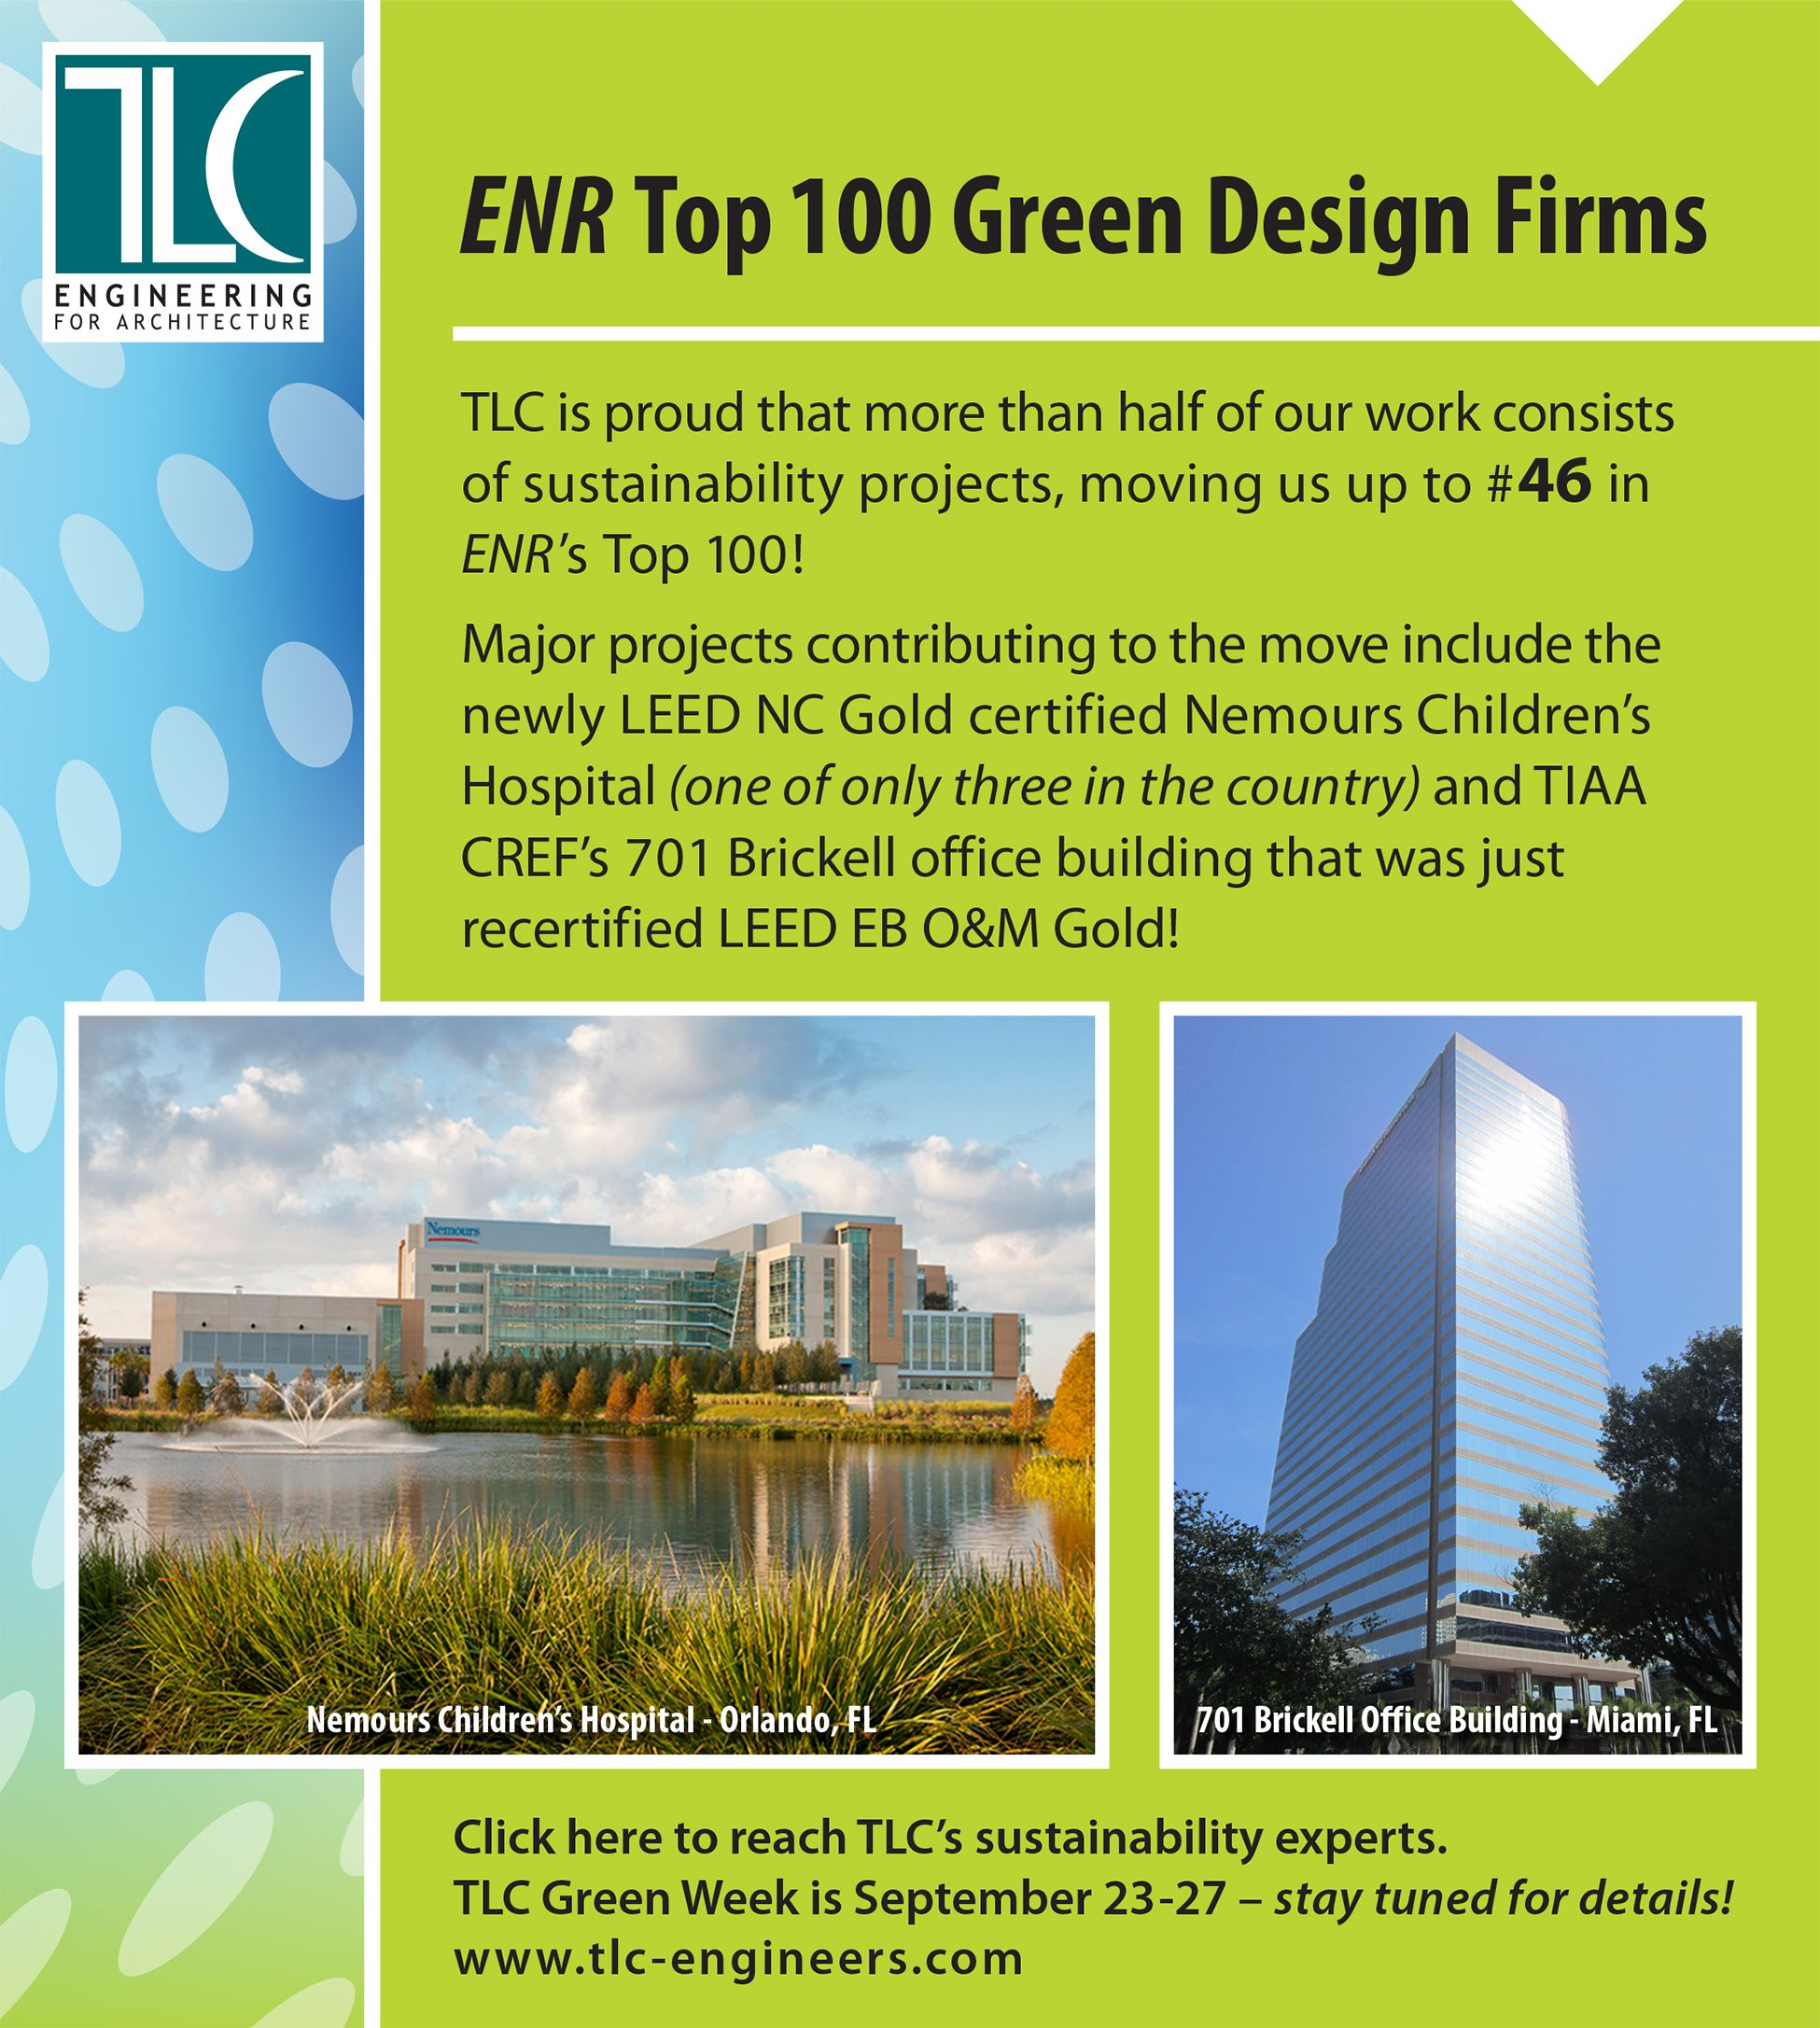 Enr top 100 green design firms tlc announcements pinterest for Top sustainable architecture firms